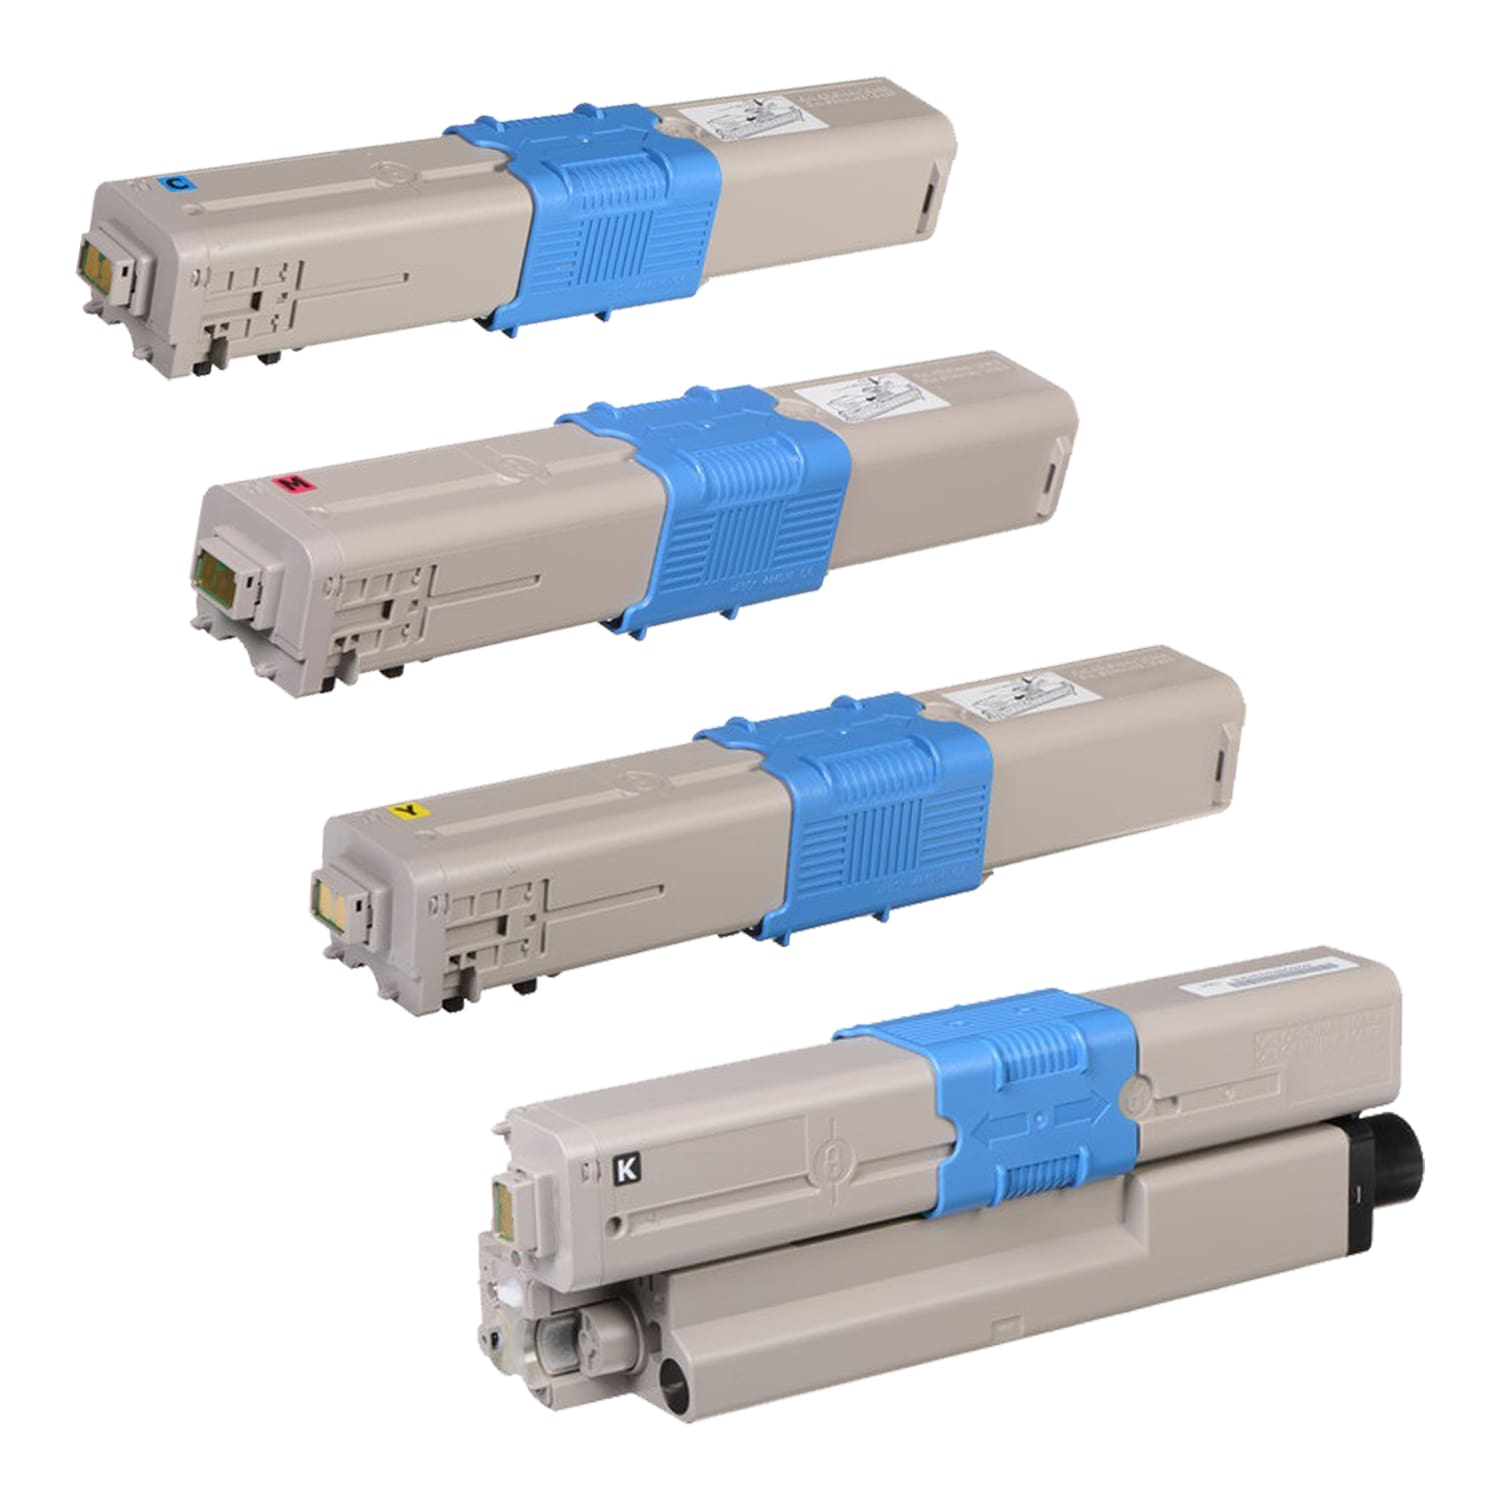 Remanufactured Okidata MC561 Toner Pack - 4 Cartridges